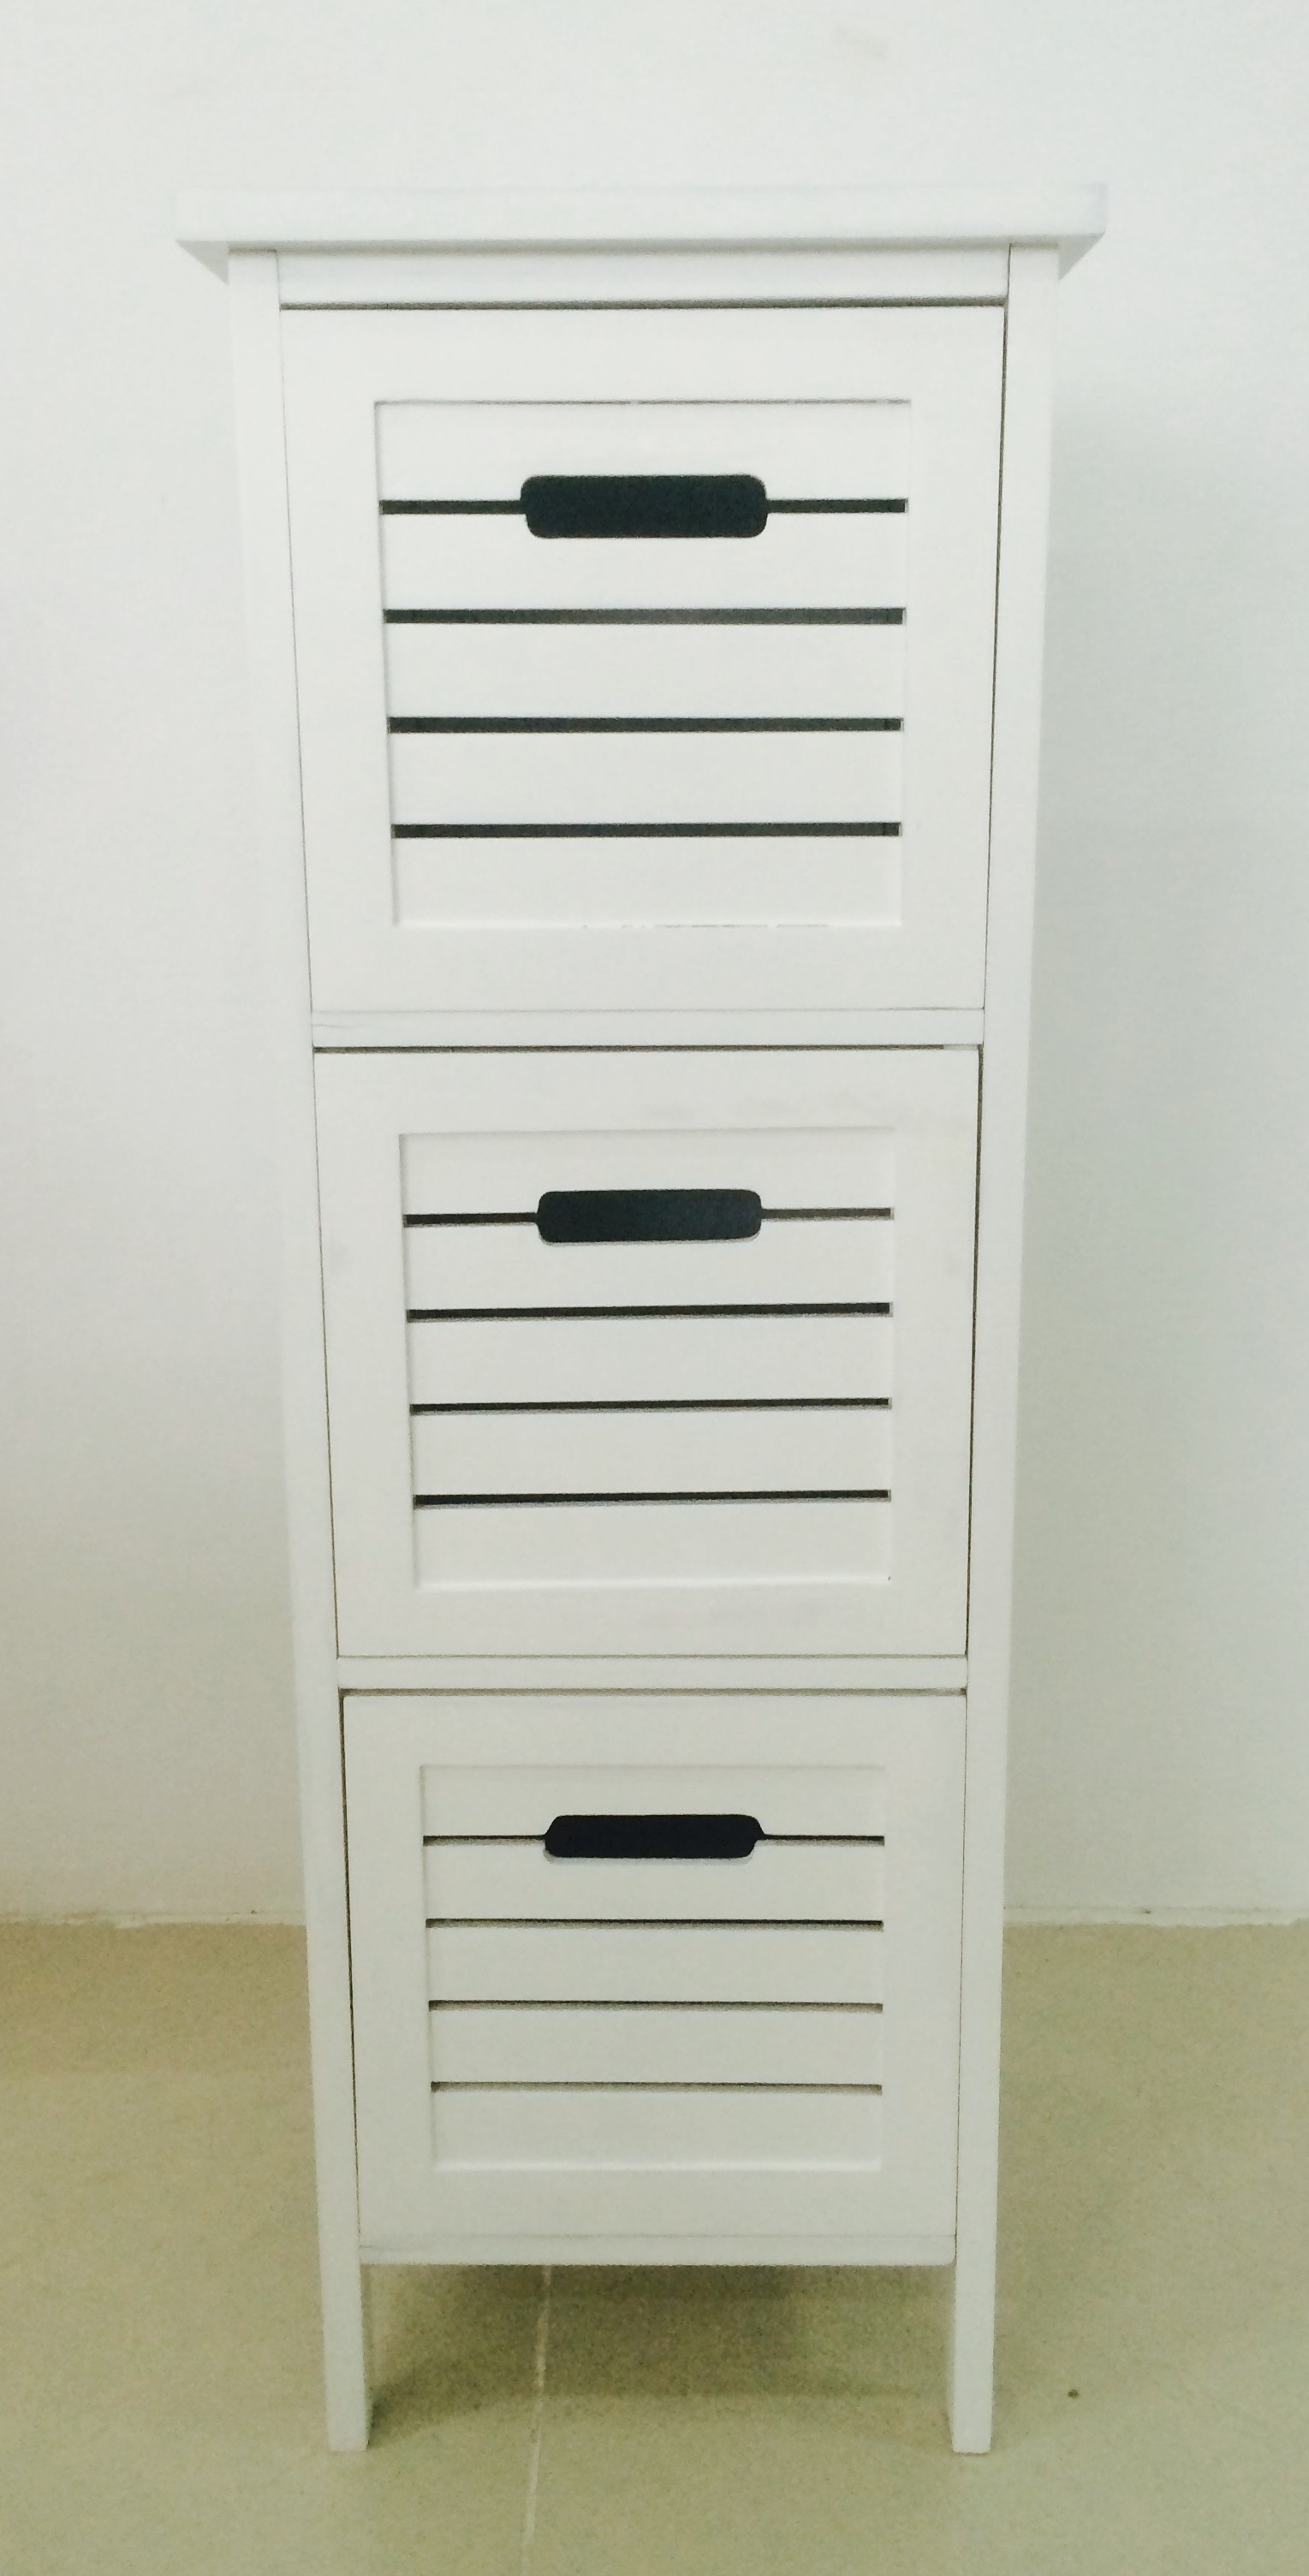 Contemporary MDF 3 Tier Shelf with drawers (4)